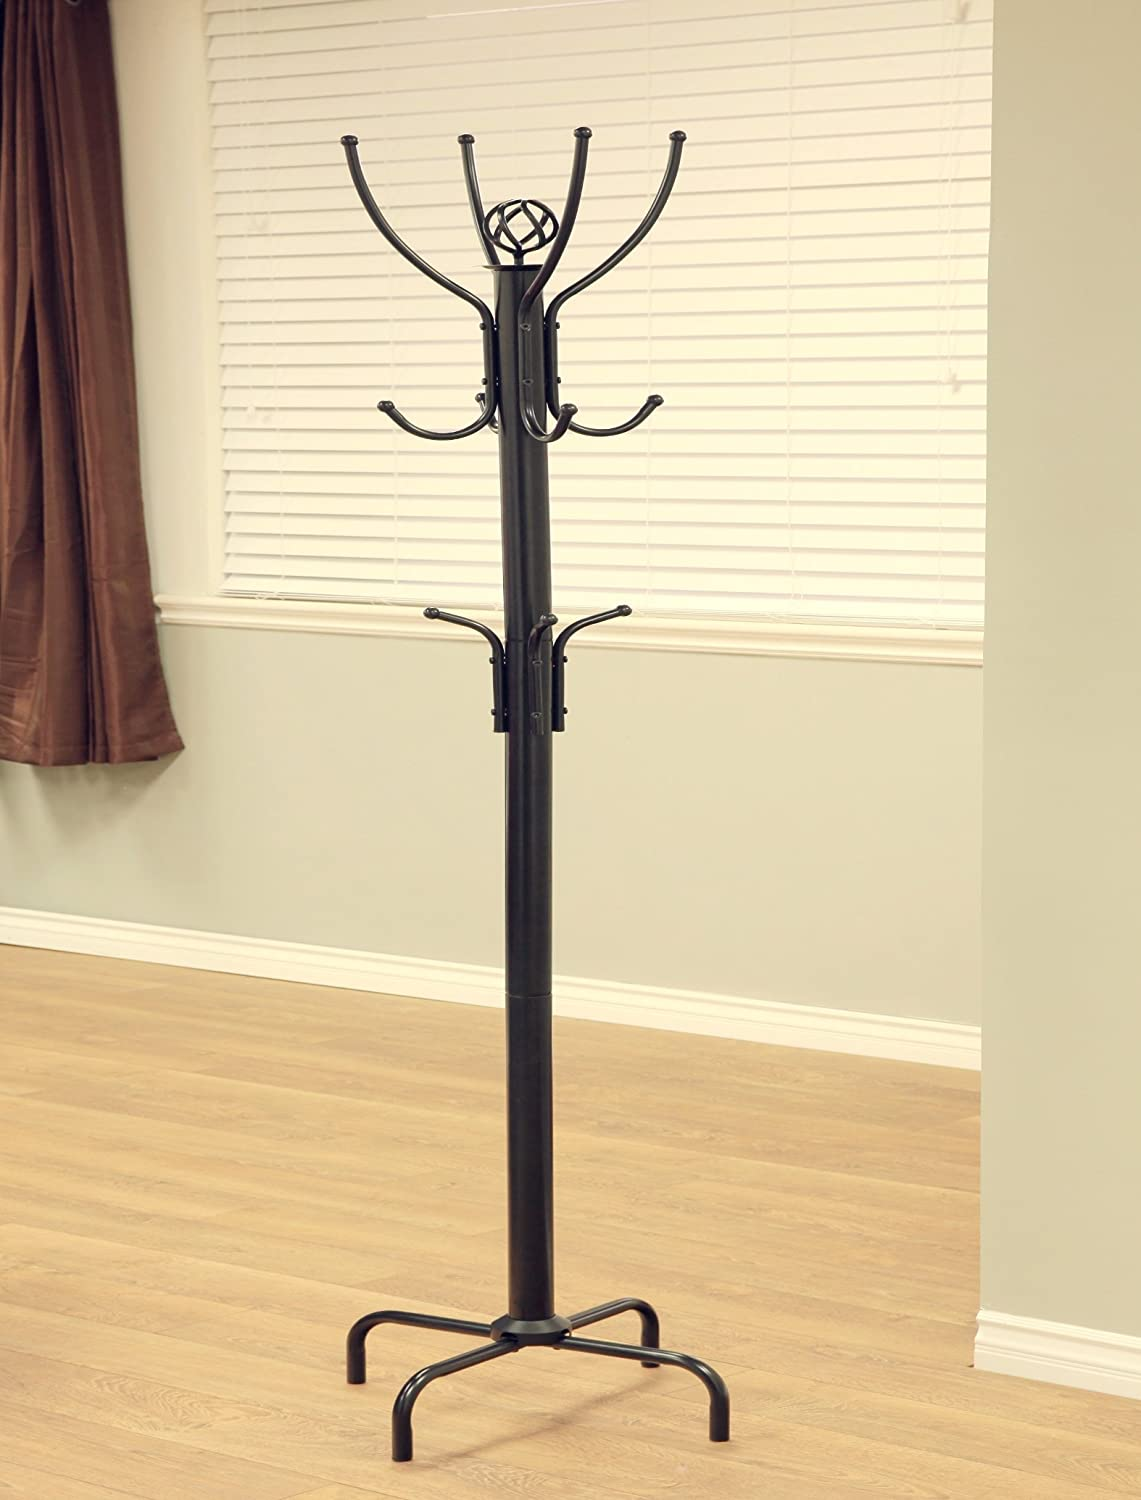 "Frenchi Home FurnishingCoat Rack, 73"" H, Raisin Black"